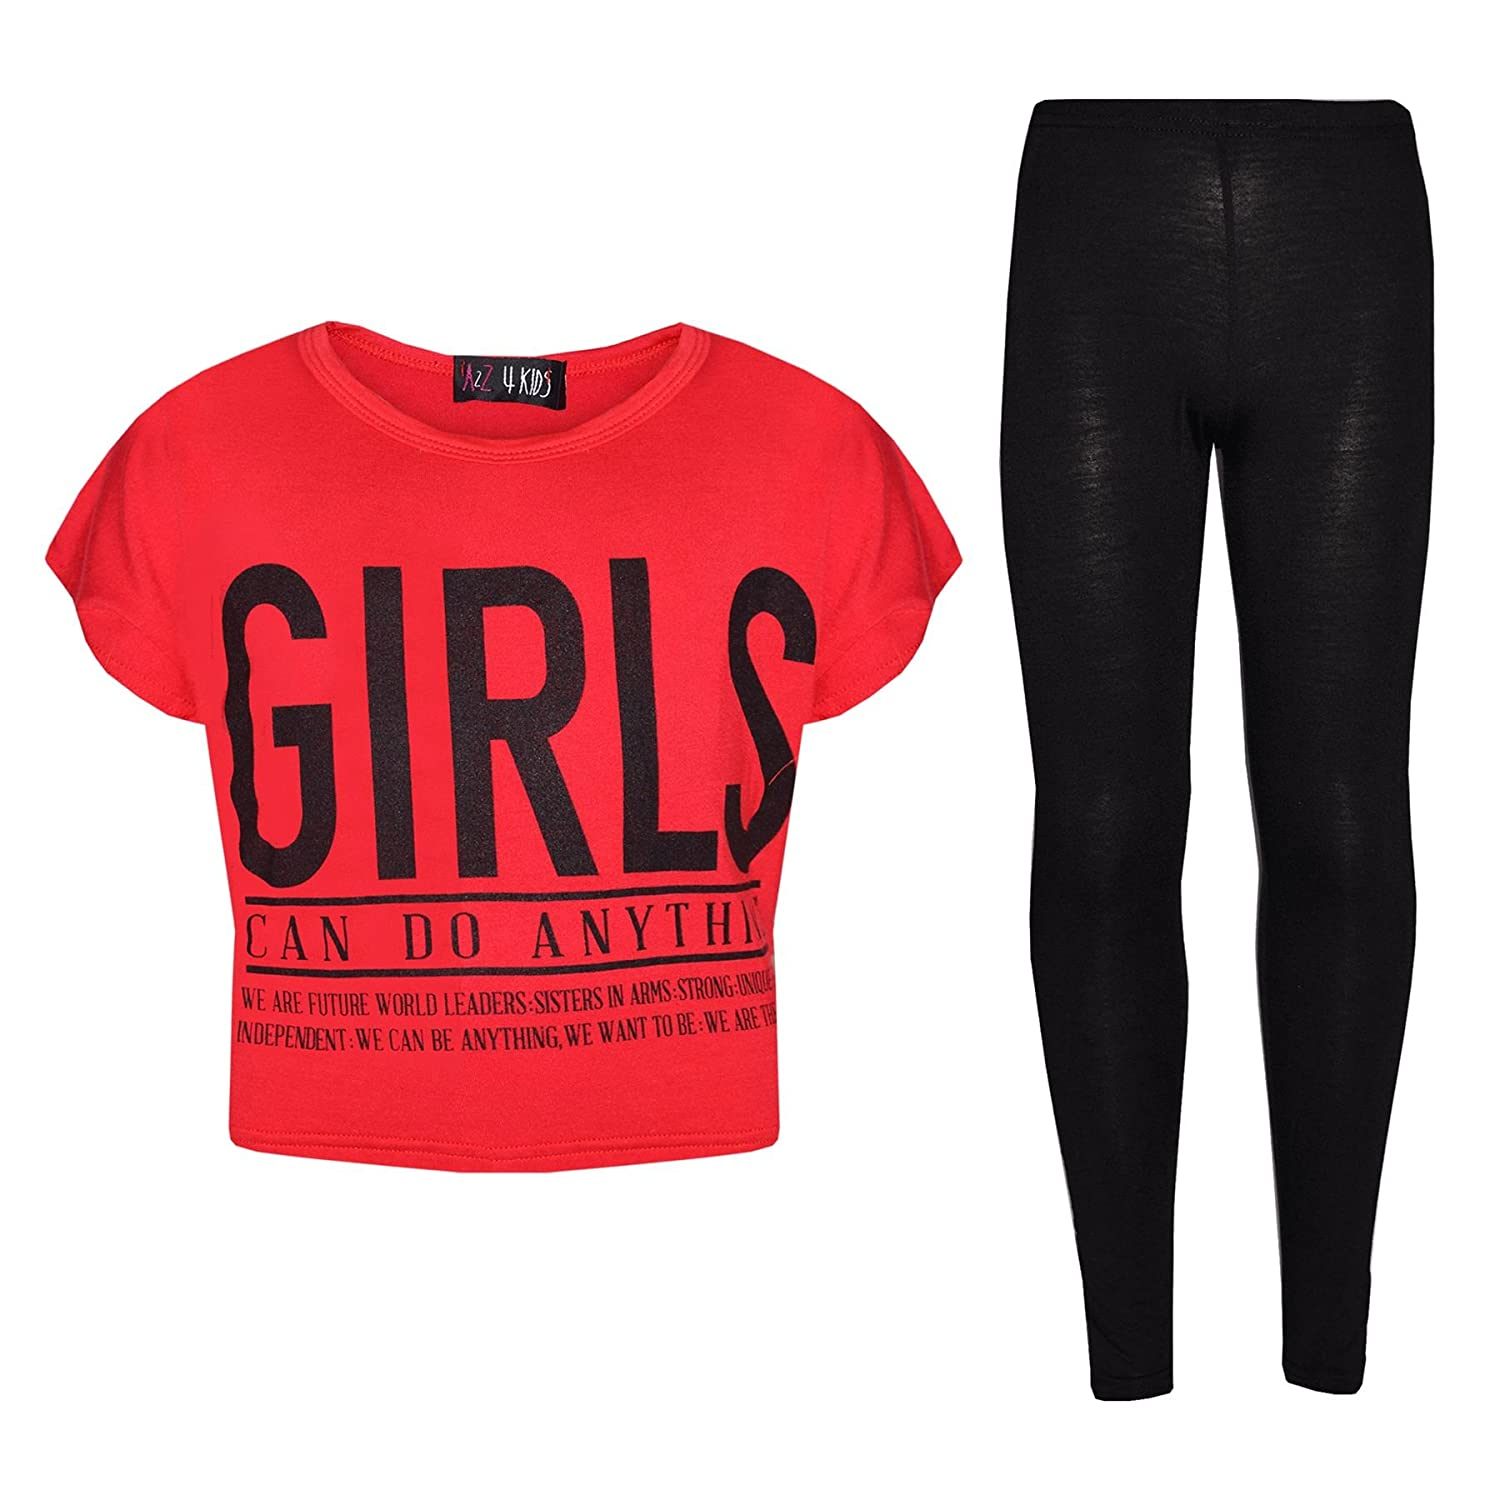 A2Z 4 Kids® Girls Tops Kids Designer's Girls Can Do Anything Print Trendy Crop Top & Fashion Legging Set New Age 7 8 9 10 11 12 13 Years